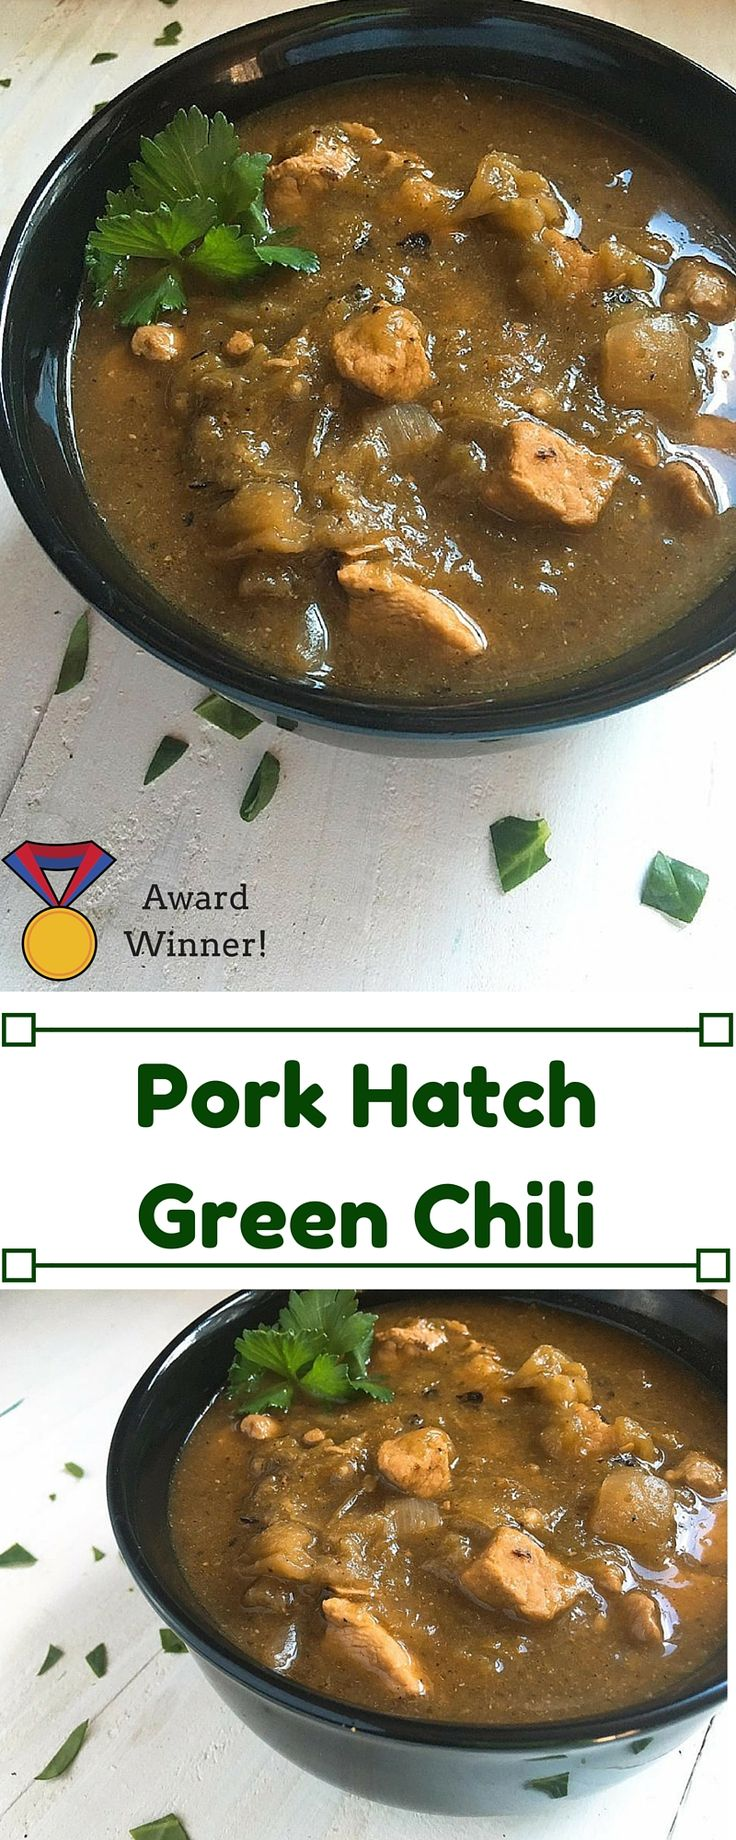 Pork Hatch Green Chili - Quality ingredients makes this the star of the show. It has won multiple cook-off contests and a staple in the menu rotation! Hatch green chile peppers are stewed with pork, onion, and seasonings for a fall comfort food favorite. Make it spicy hot or mild and best served with white rice. Pork Hatch Green Chili | Three Olives Branch | www.threeolivesbranch.com